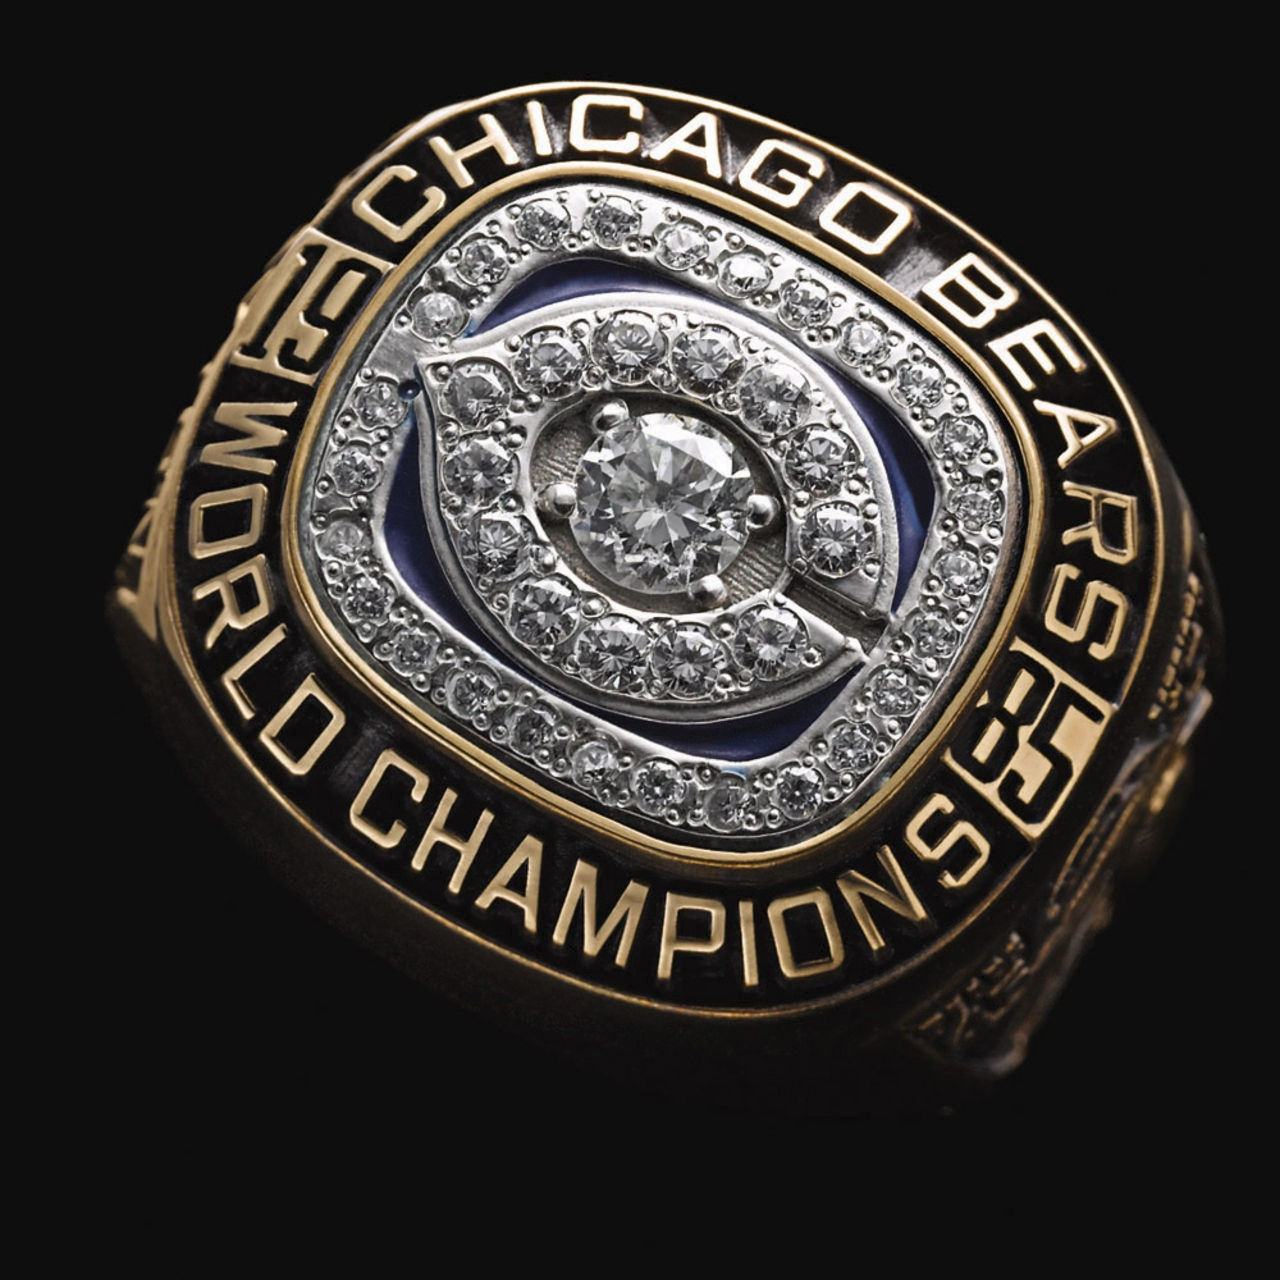 Chicago Bears 1986 champions ring